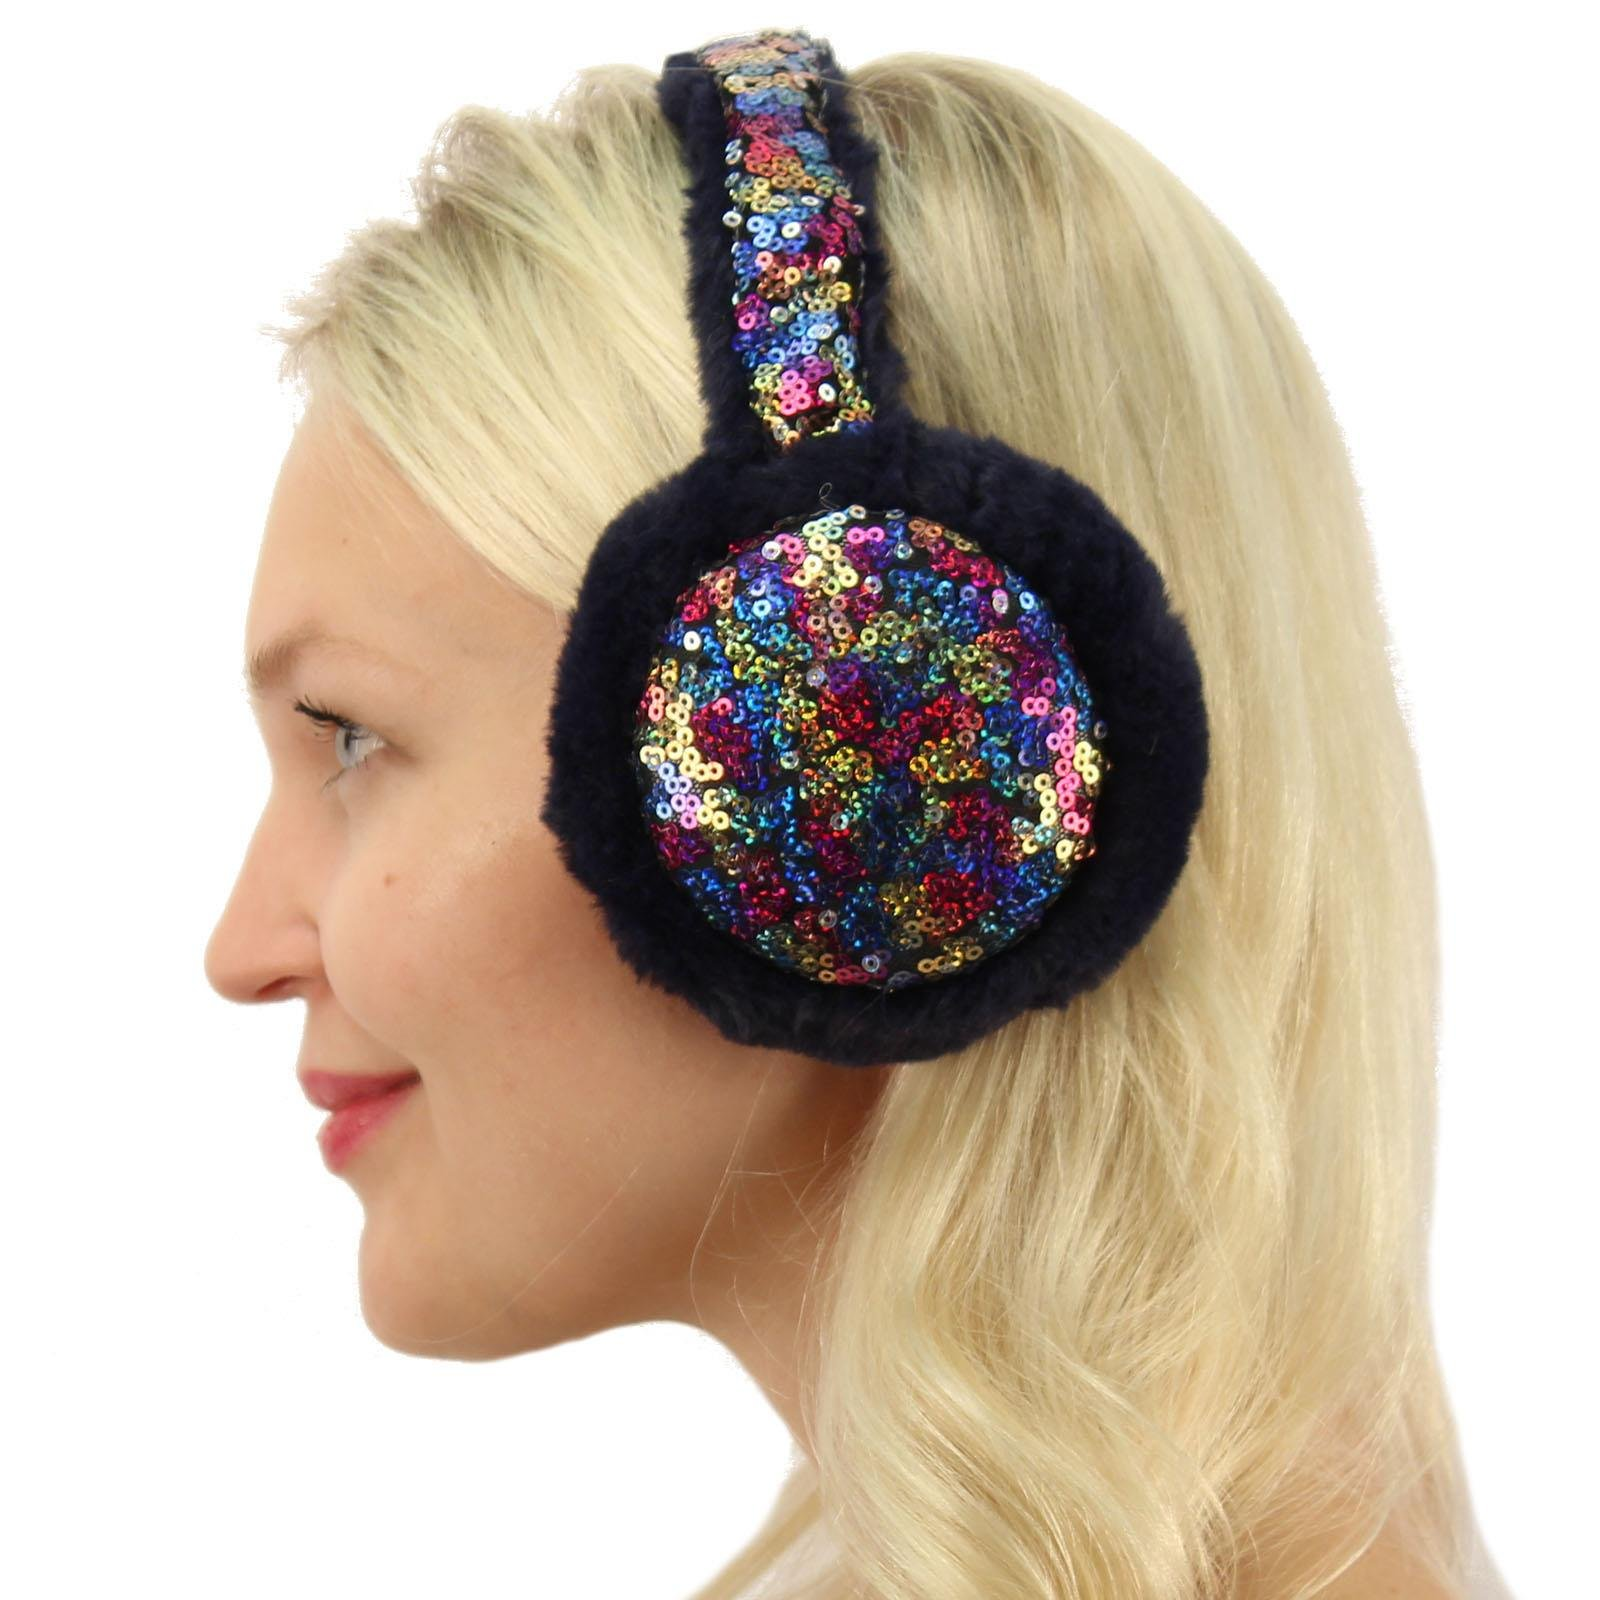 Winter Cute Metallic Sequins Soft Faux Fur Headband Earmuffs Earwarmer Ski Rainbow